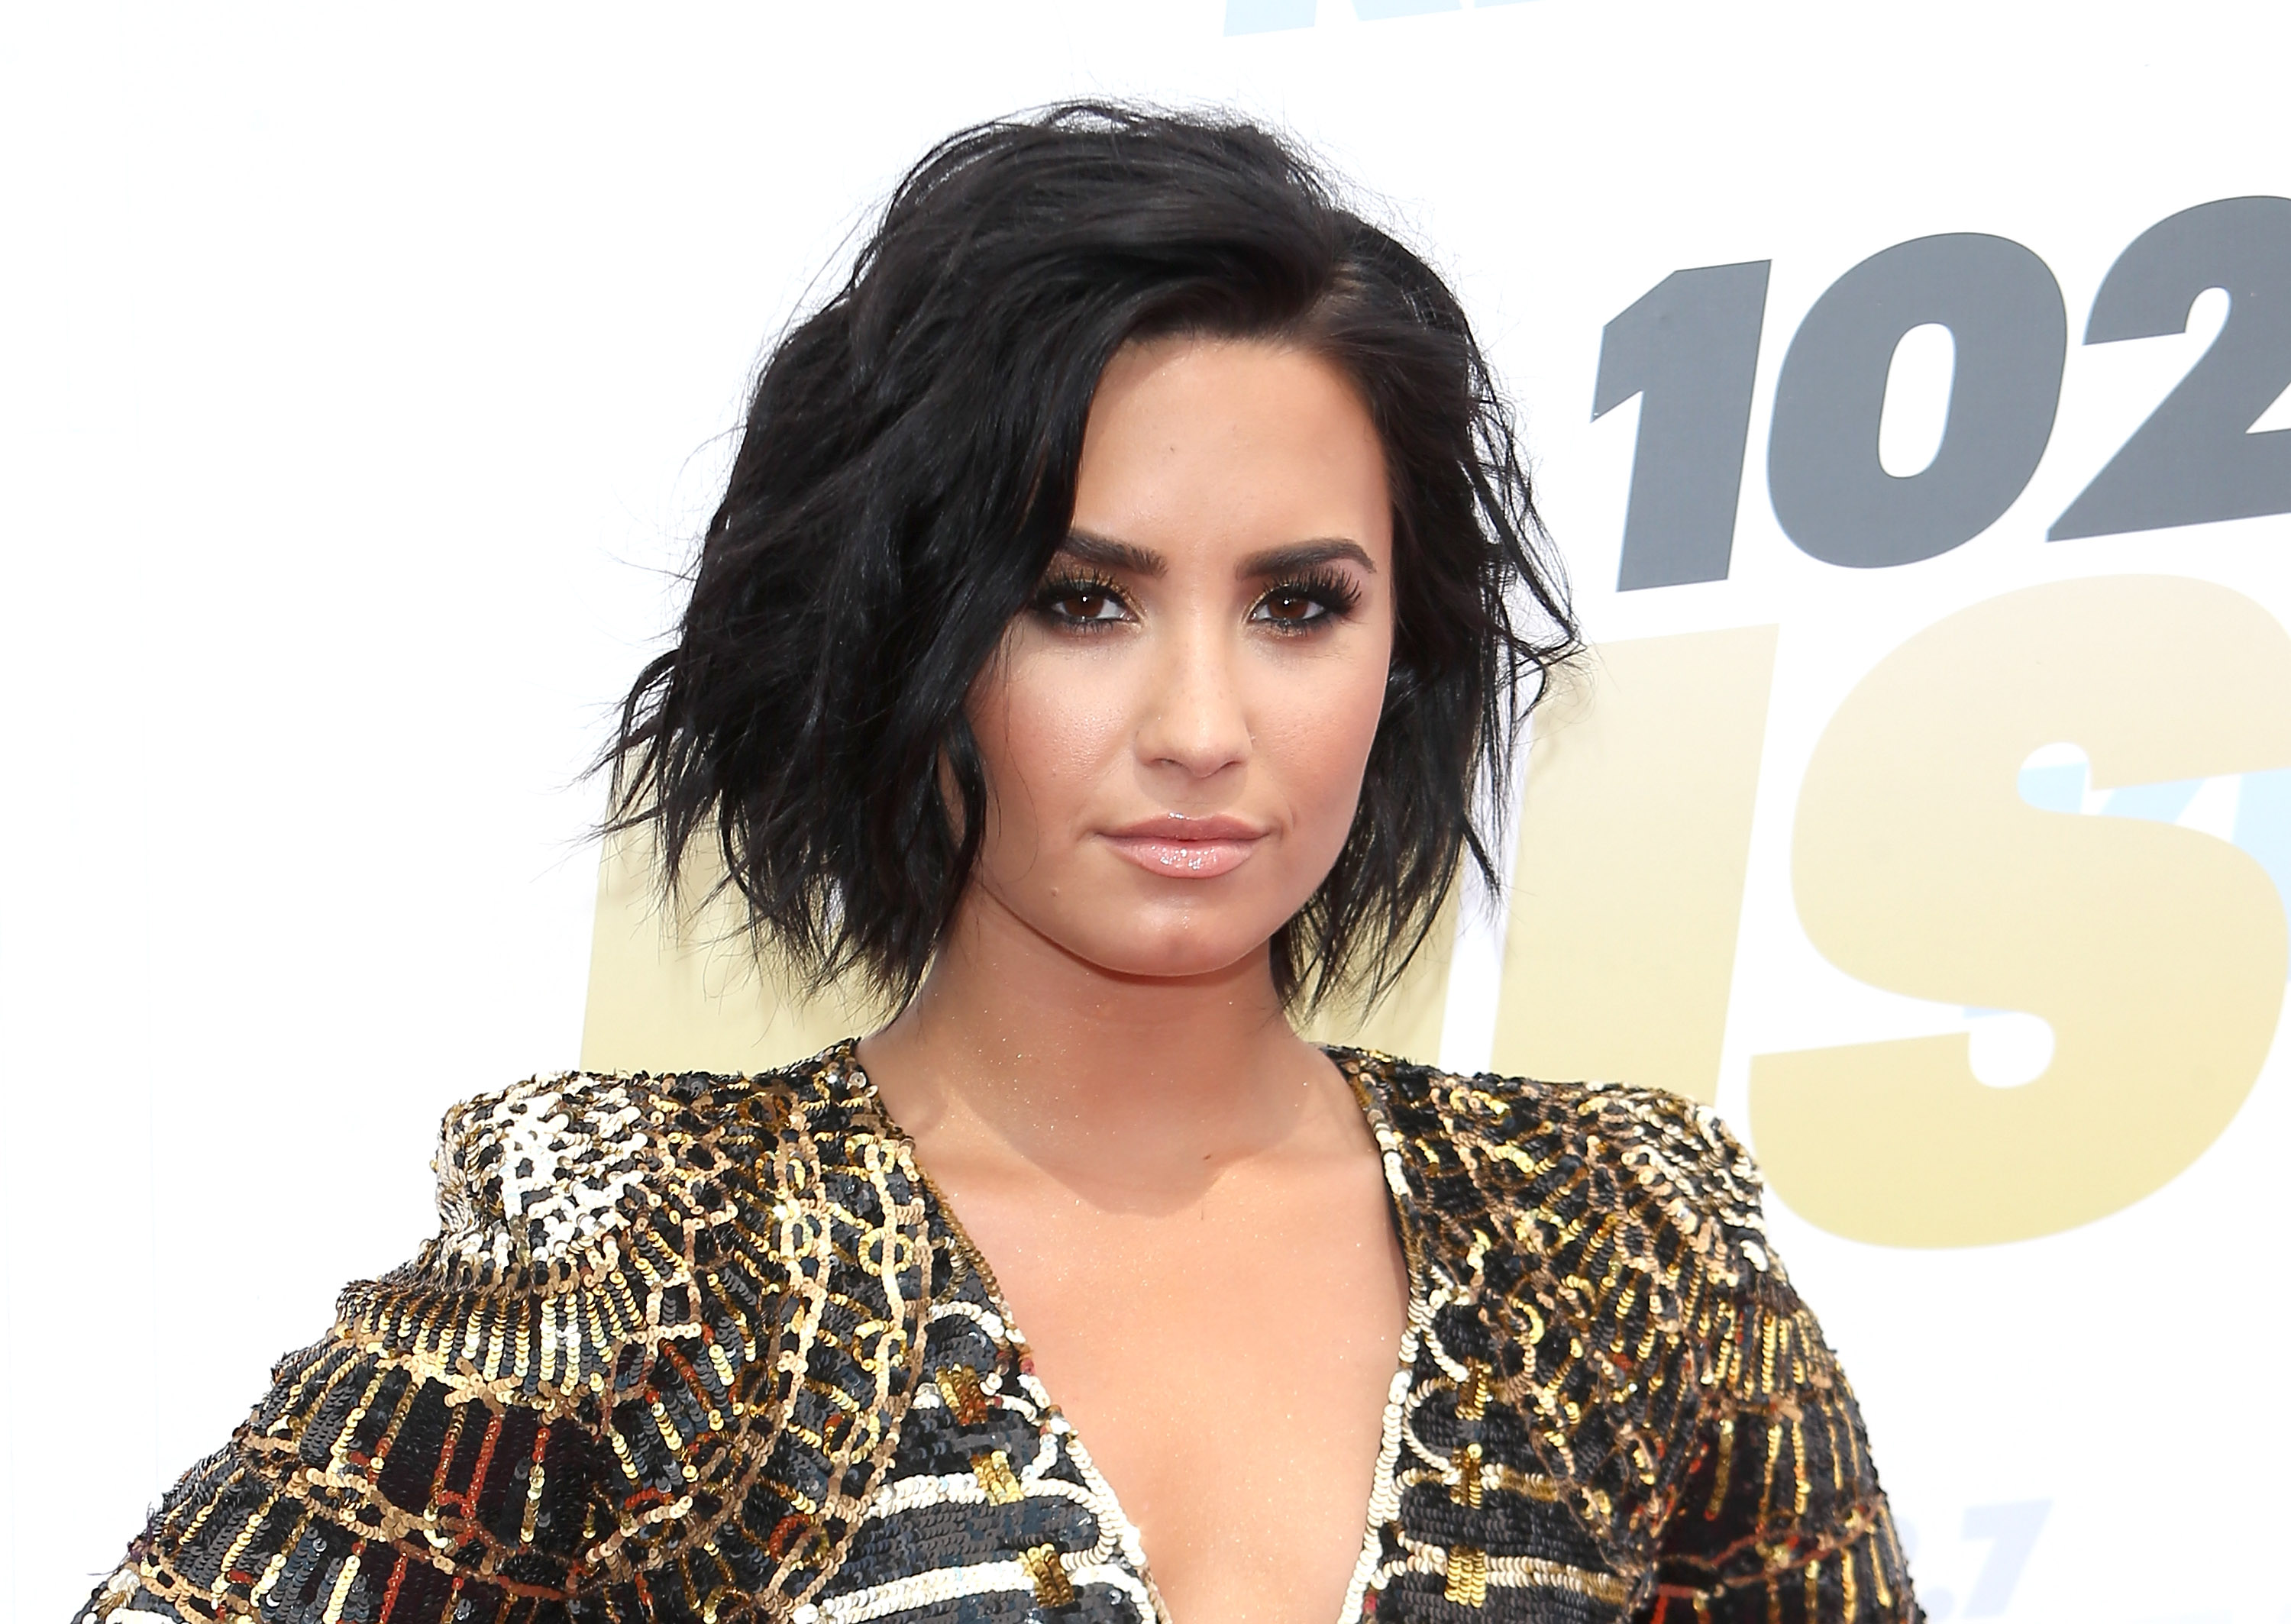 Demi Lovato is focusing on 'staying healthy